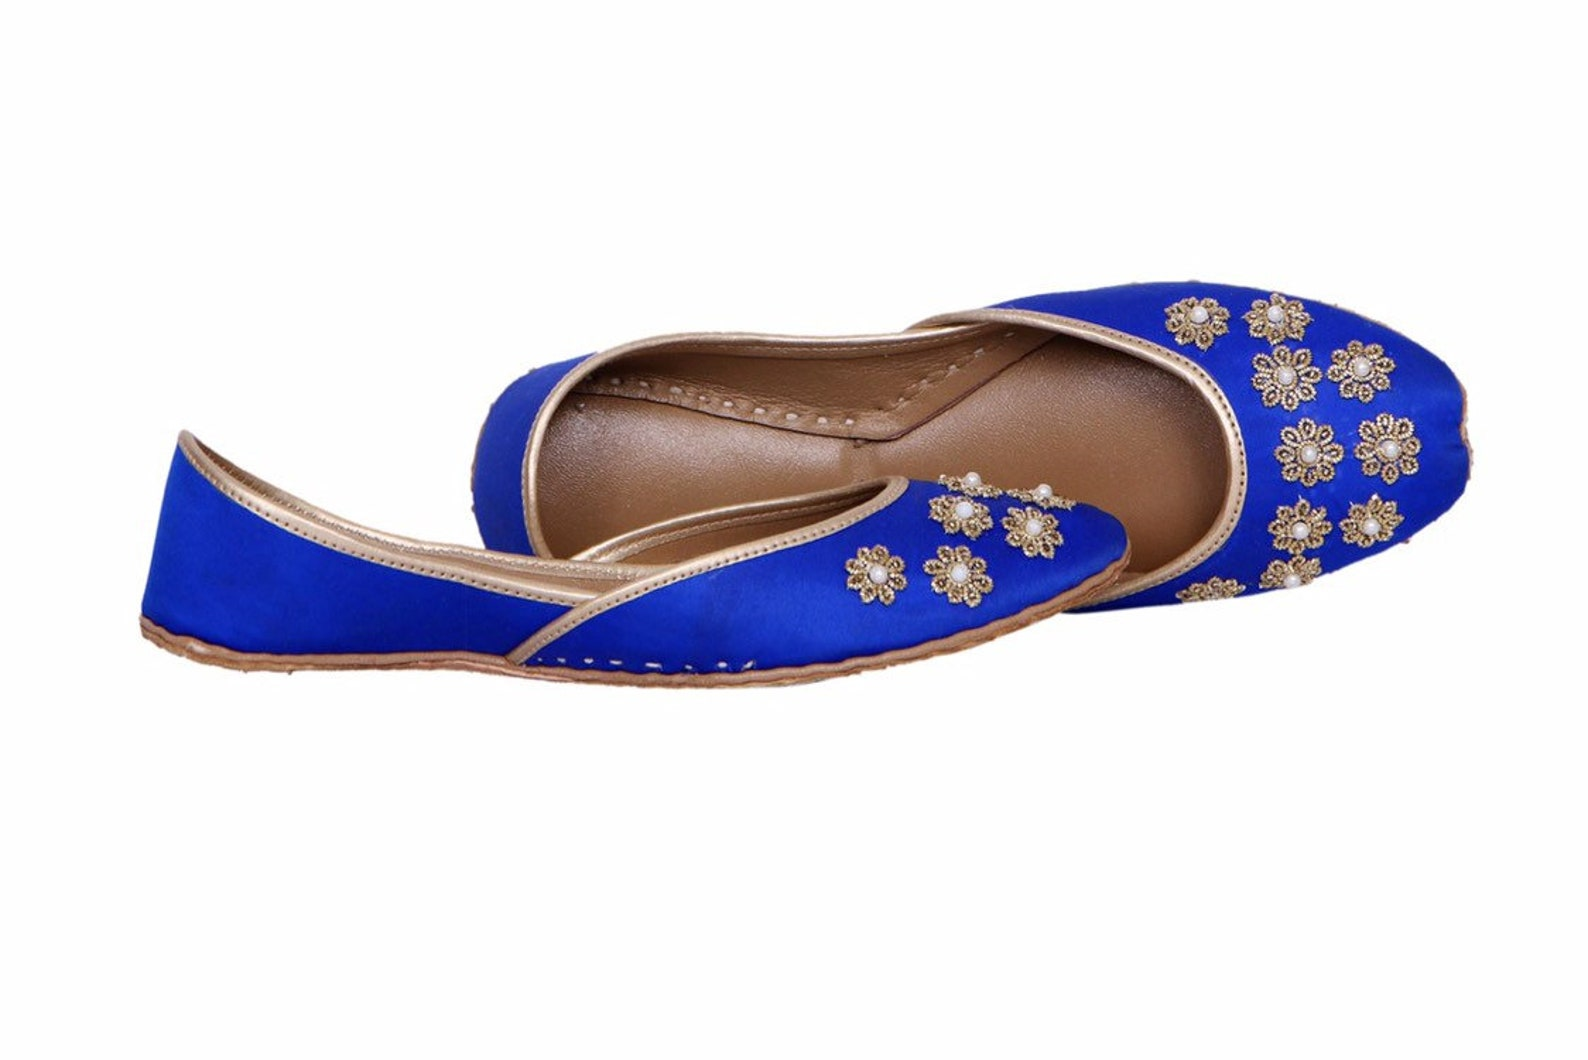 blue base embellished ballet flat shoes blue jutis blue slip ons mojari blue khussa